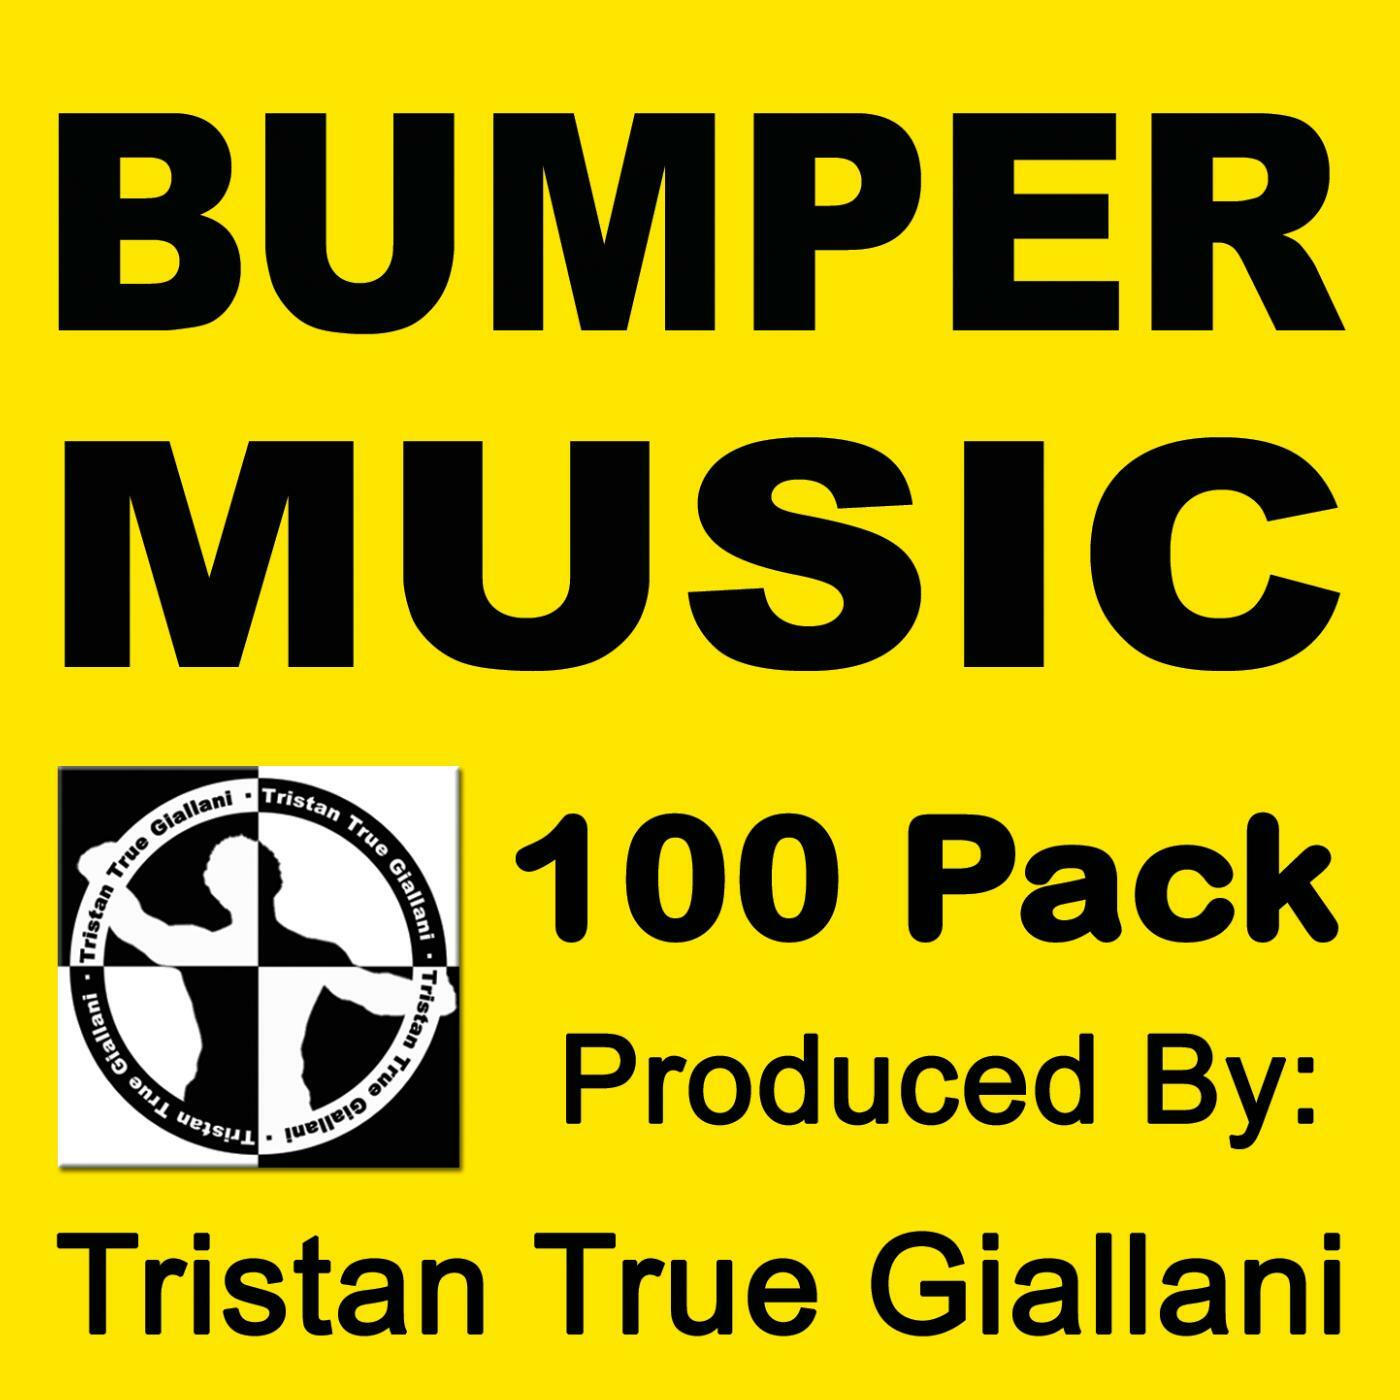 Bumper Music Radio: Listen To Free Music & Get The Latest